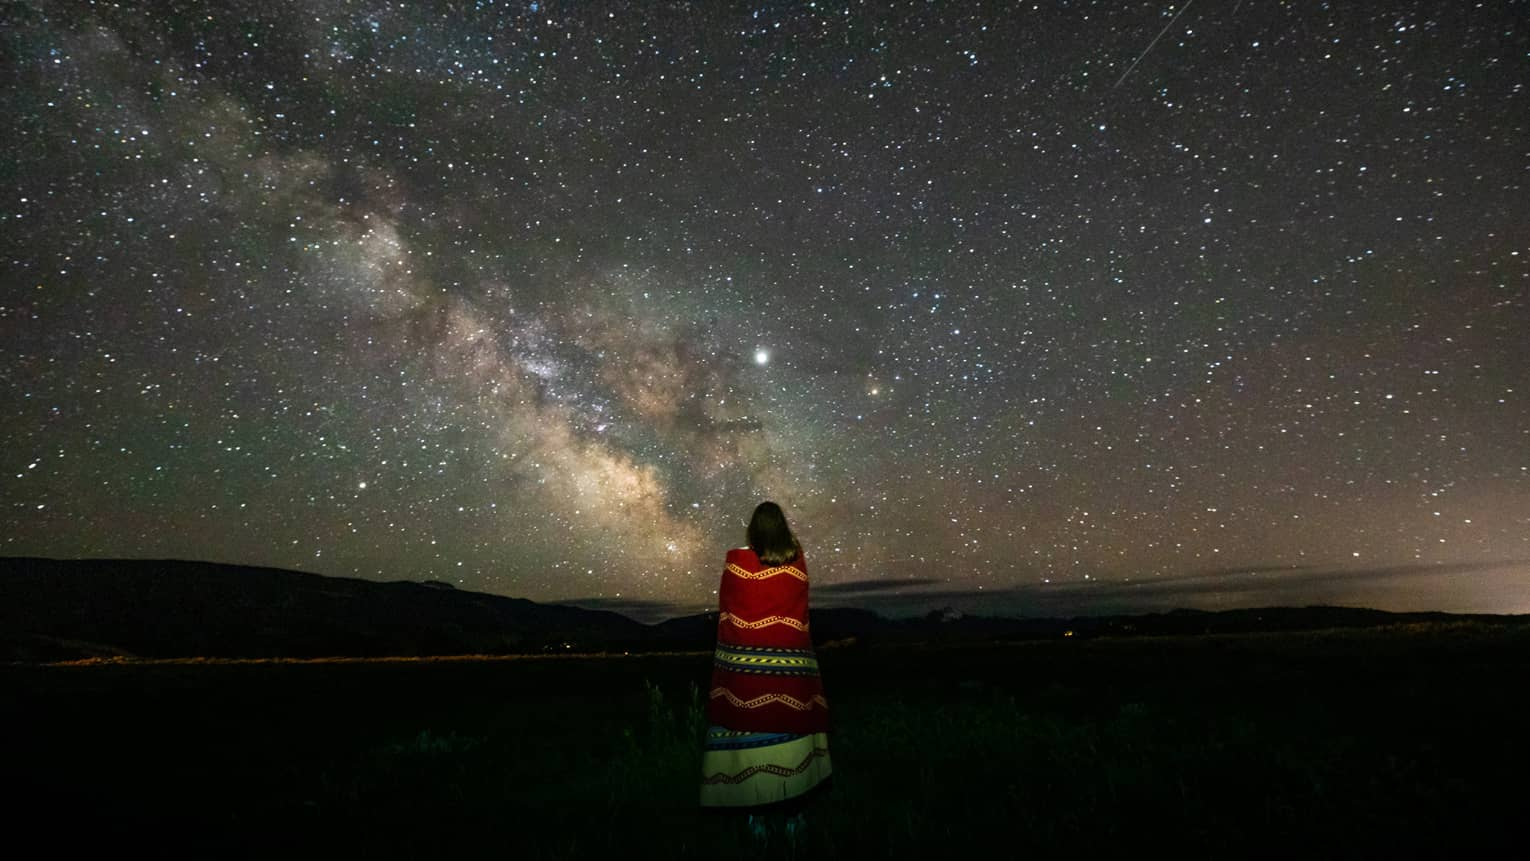 A lone woman stargazes, wrapped in a colourful striped blanket